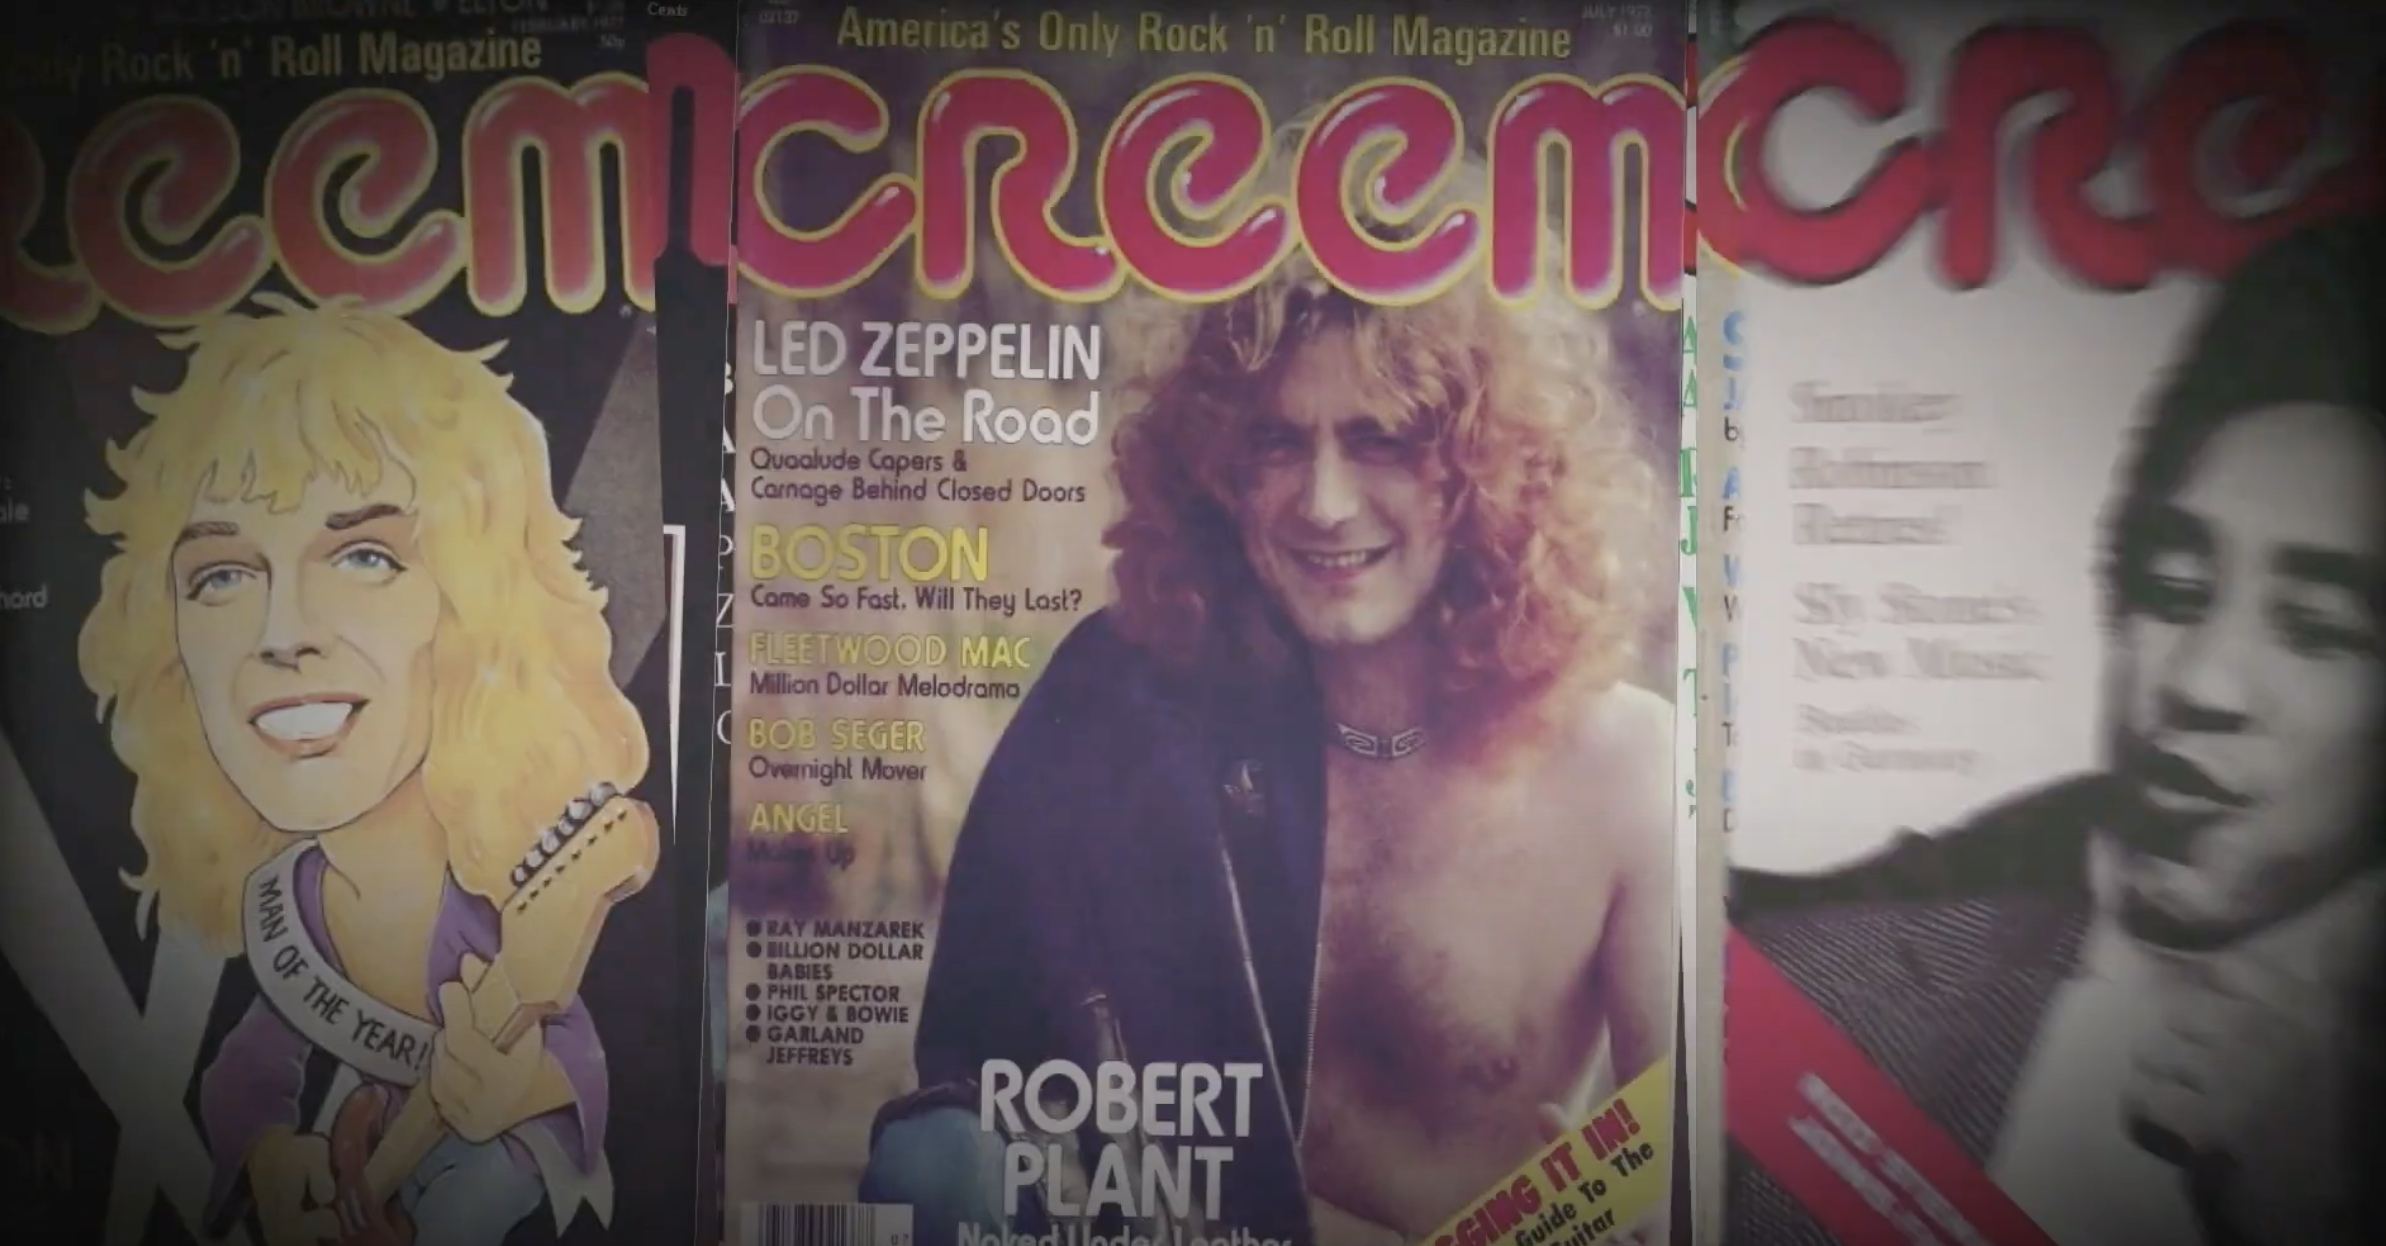 A new documentary CREEM: America's Only Rock 'n' Roll Magazine to be released in theaters